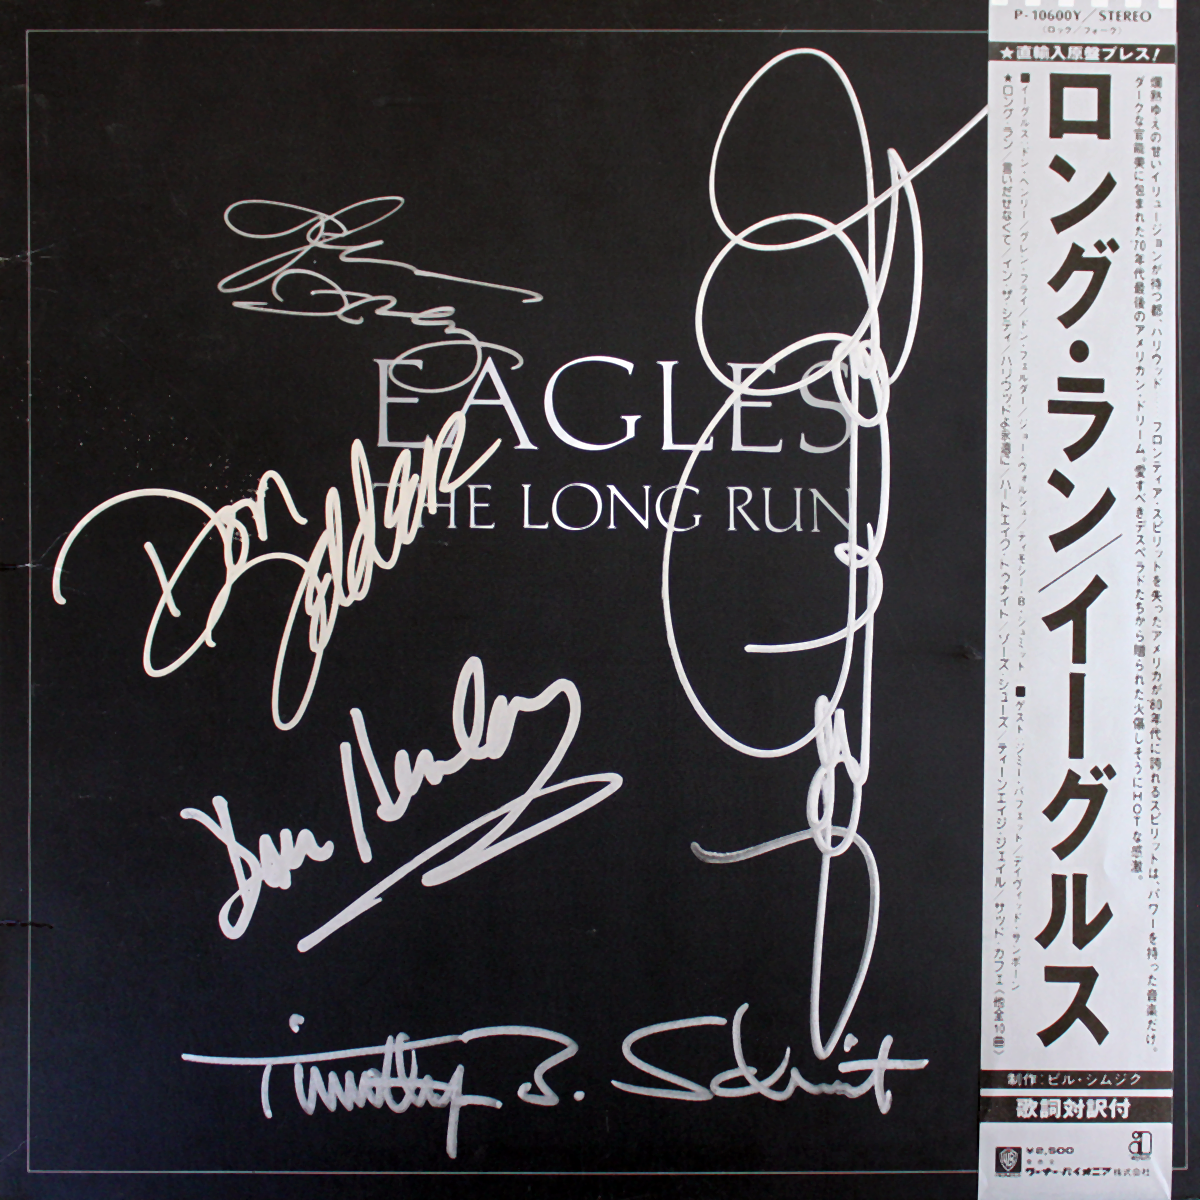 Eagles LP (Japanese) - The Long Run